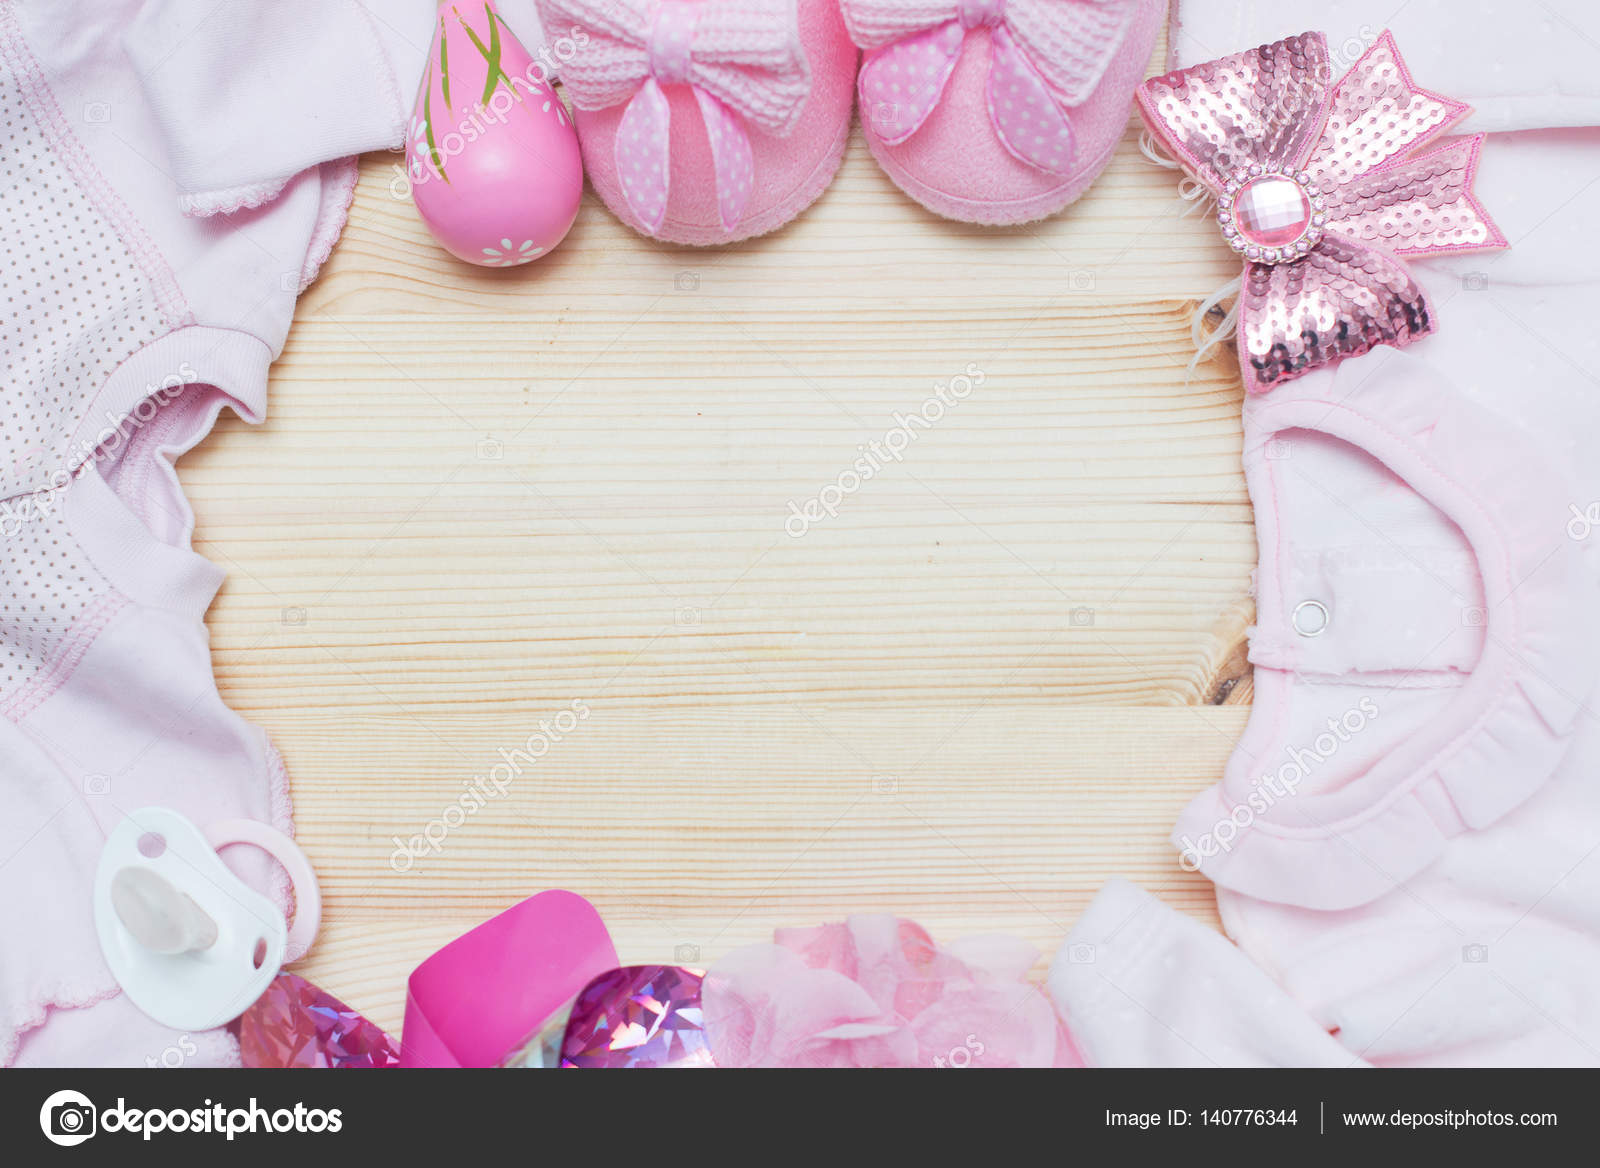 e788912079299 Its a Girl pink theme Baby Shower or Nursery background with decorated  borders on wood background